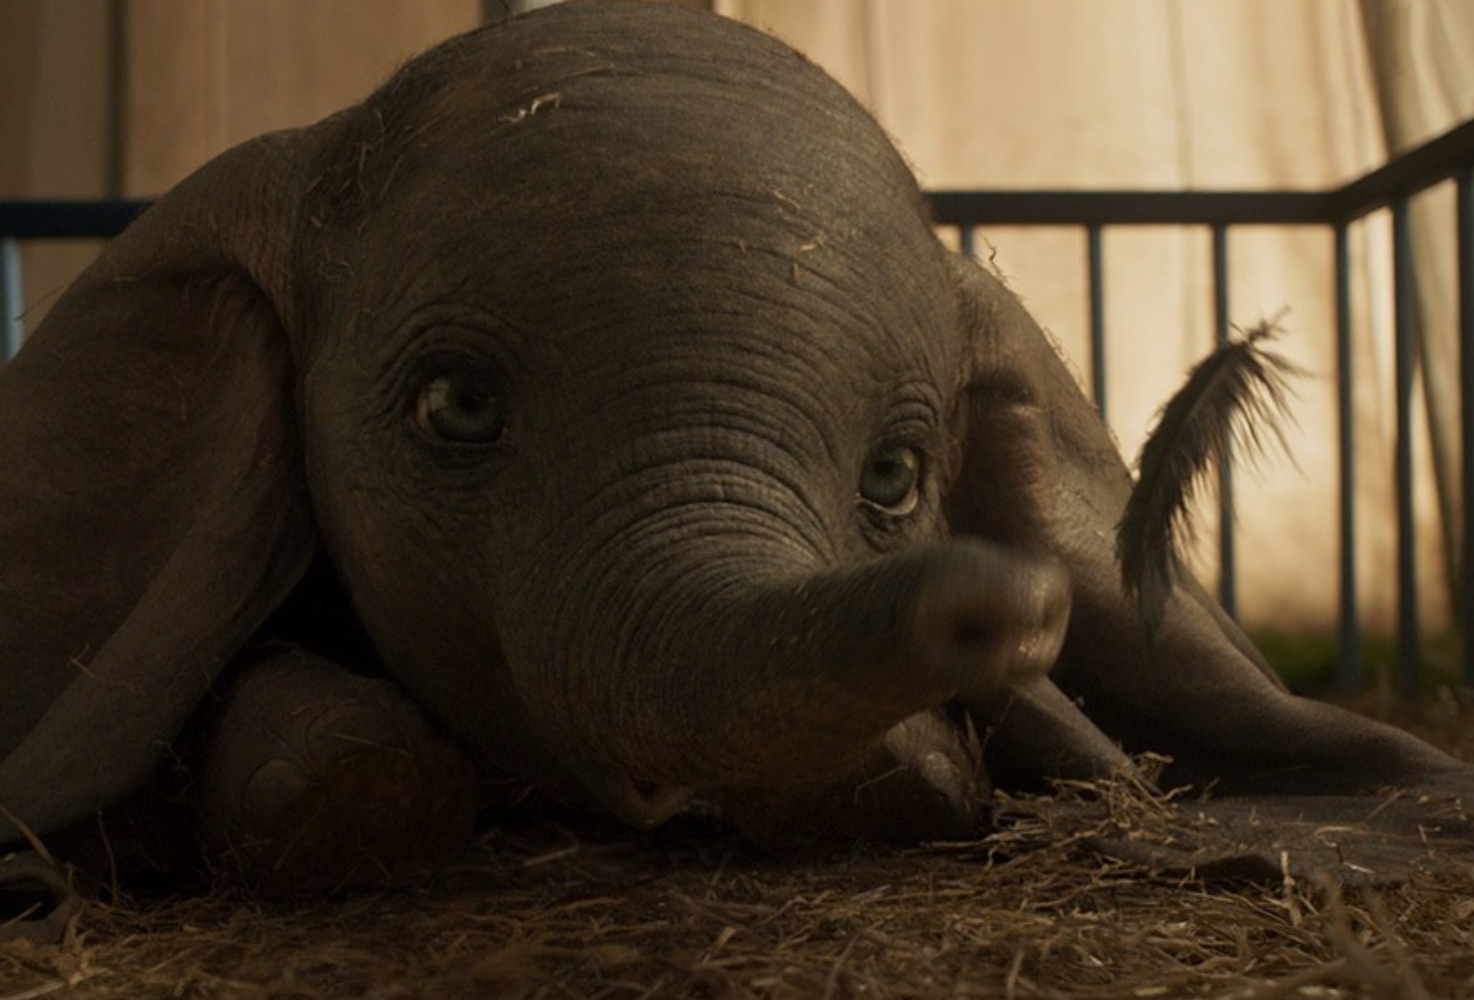 What Critics Are Saying About 'Dumbo'